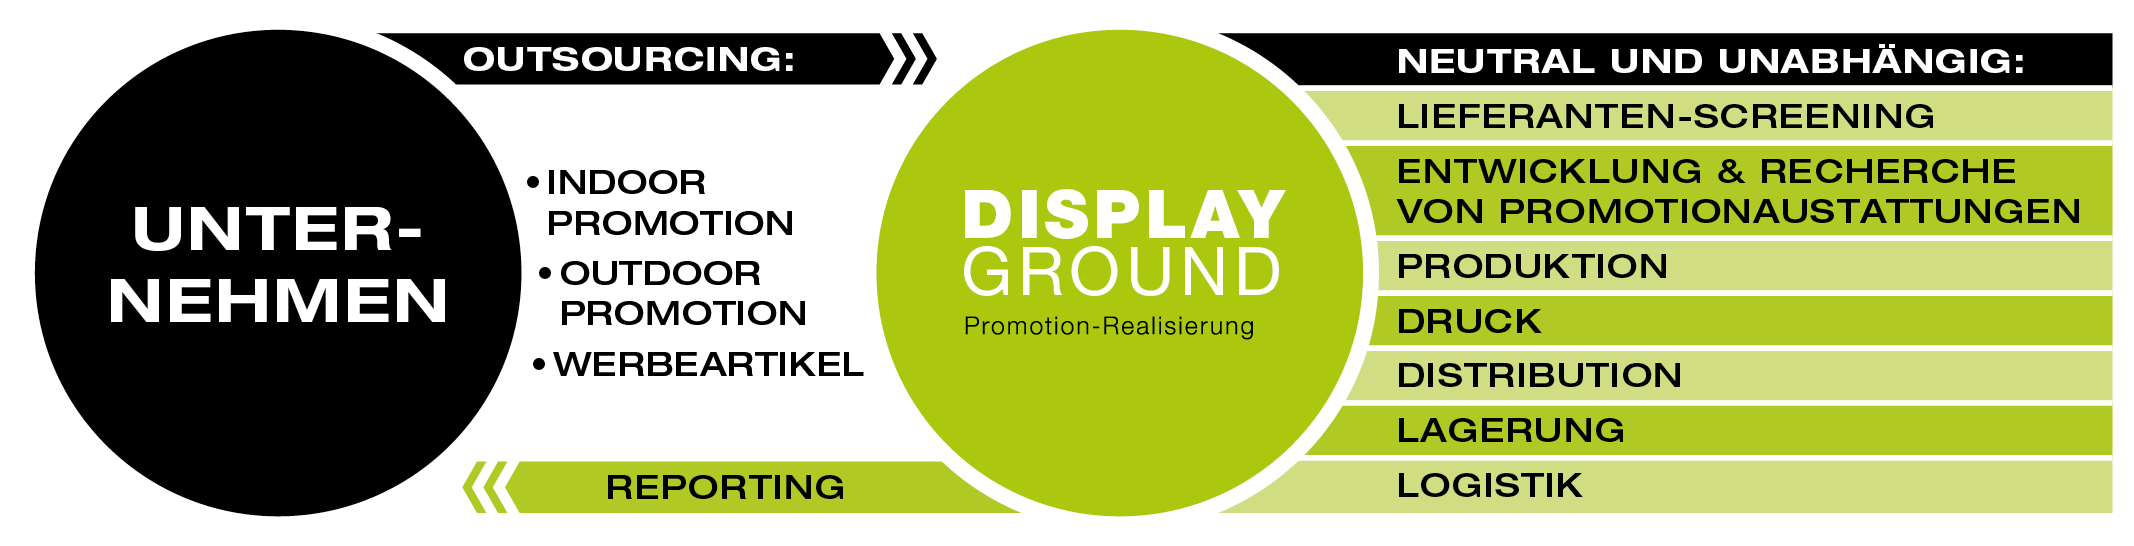 Displayground Outsourcing